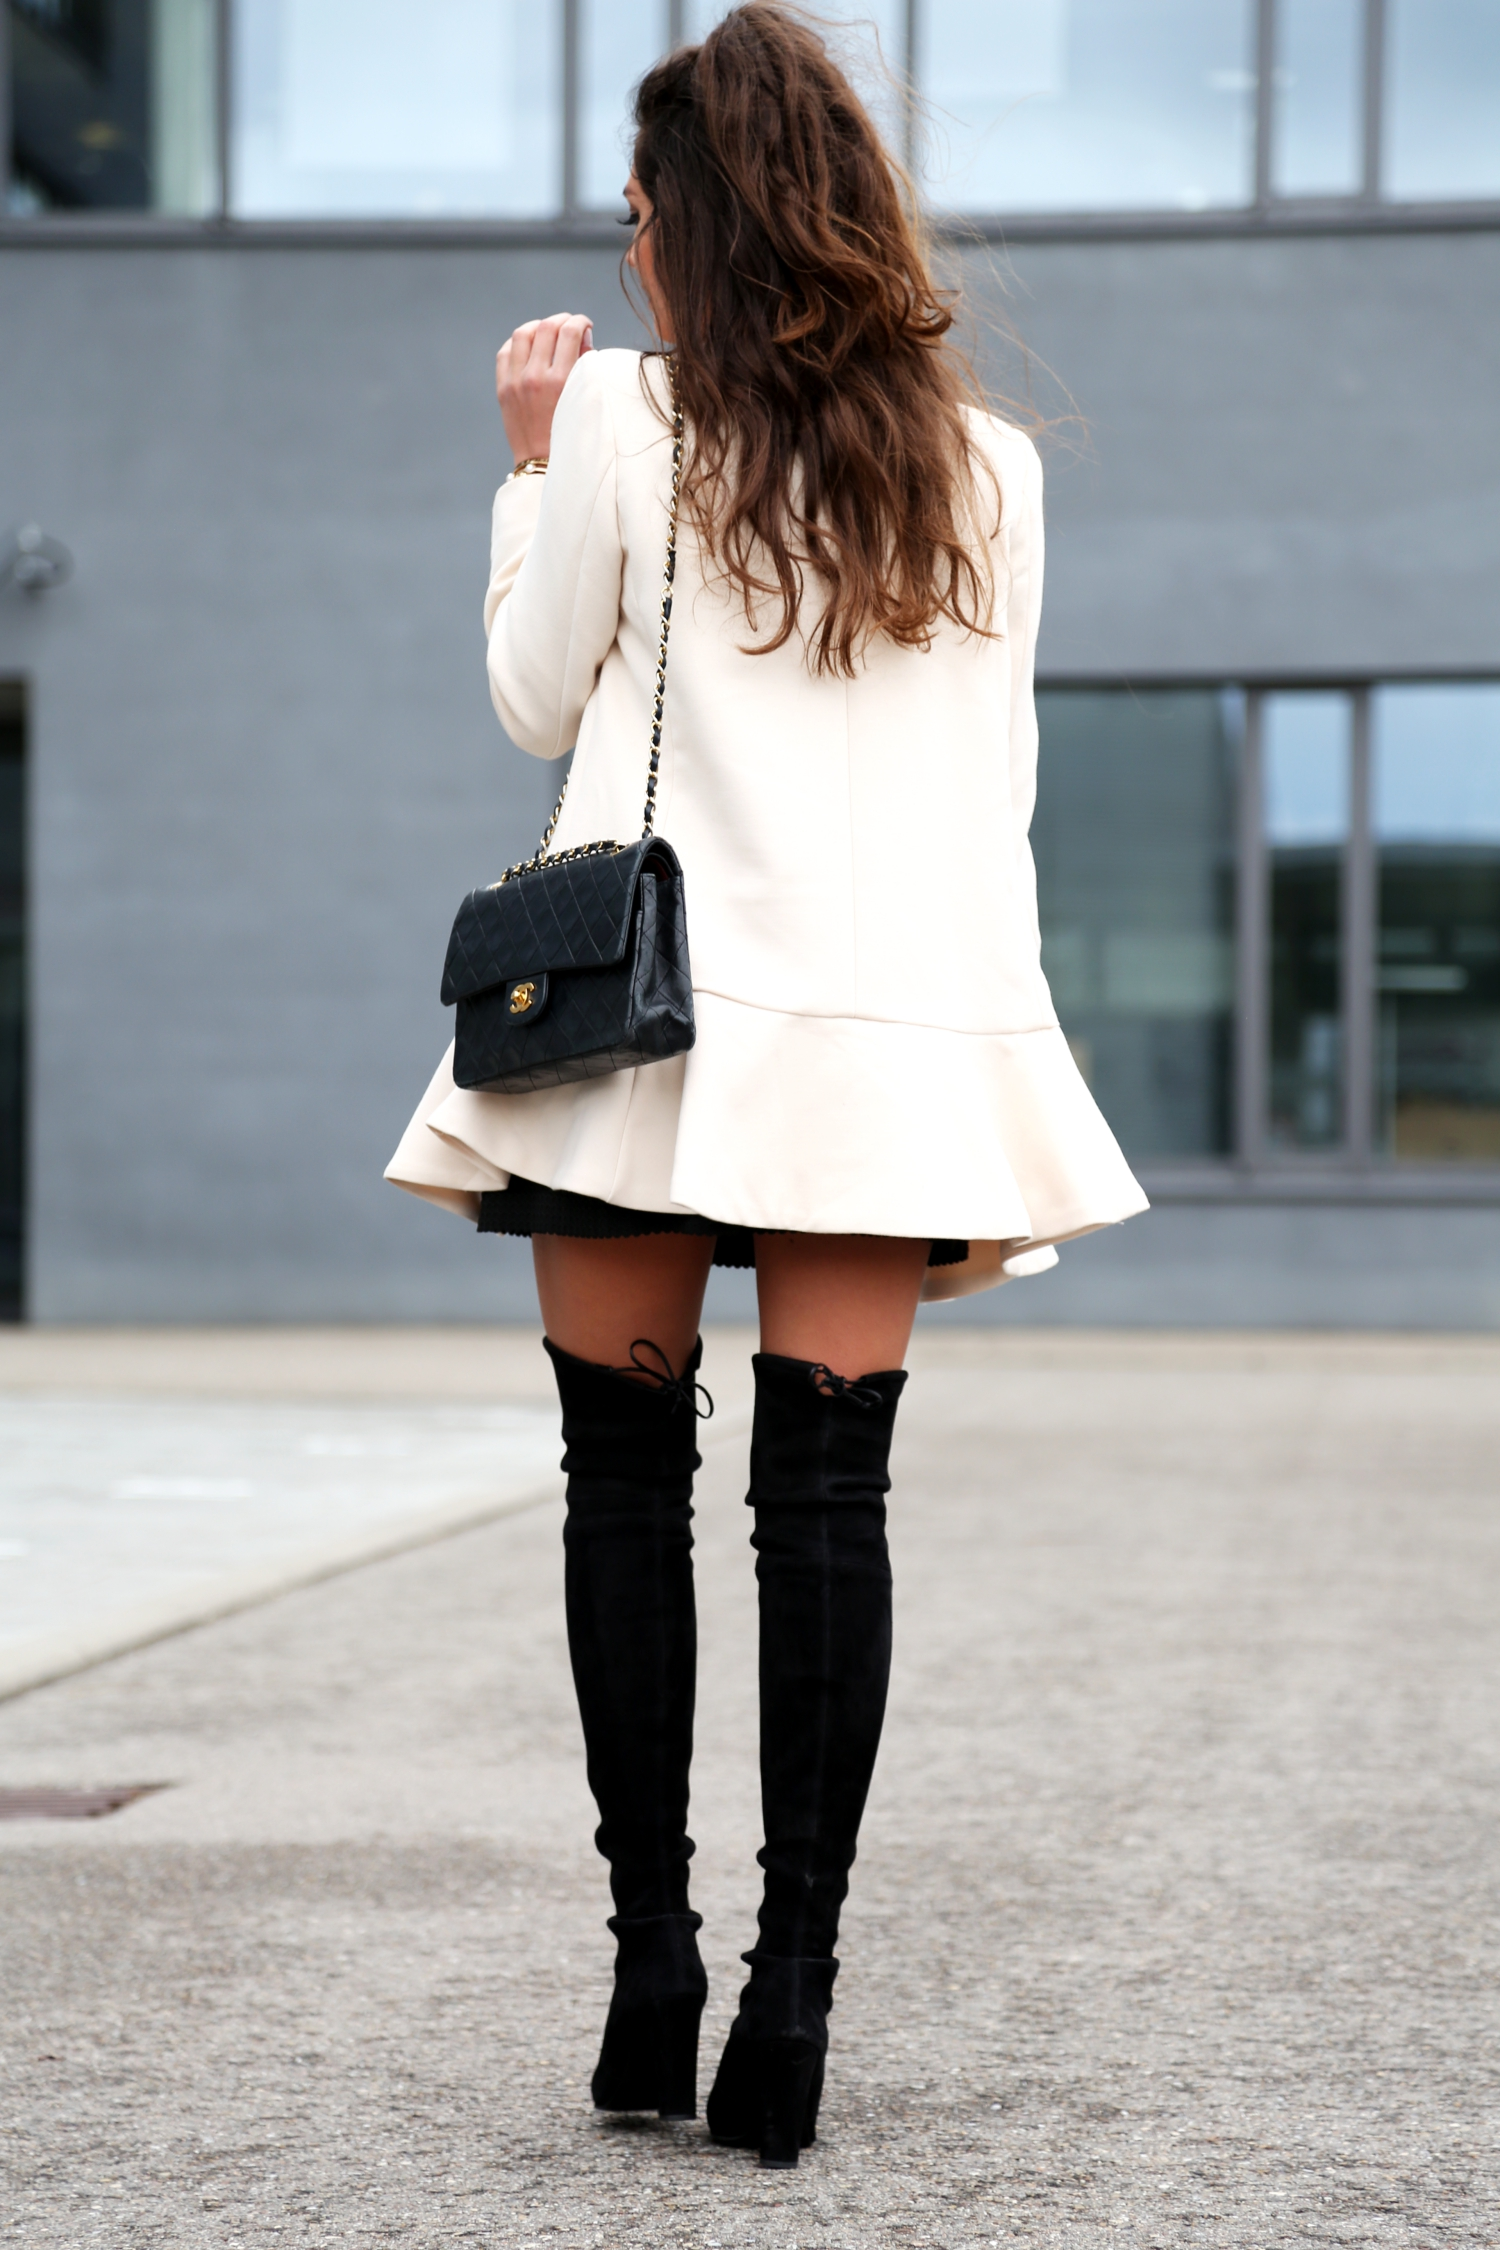 outfit-overknees-spring-look-chanel-bag